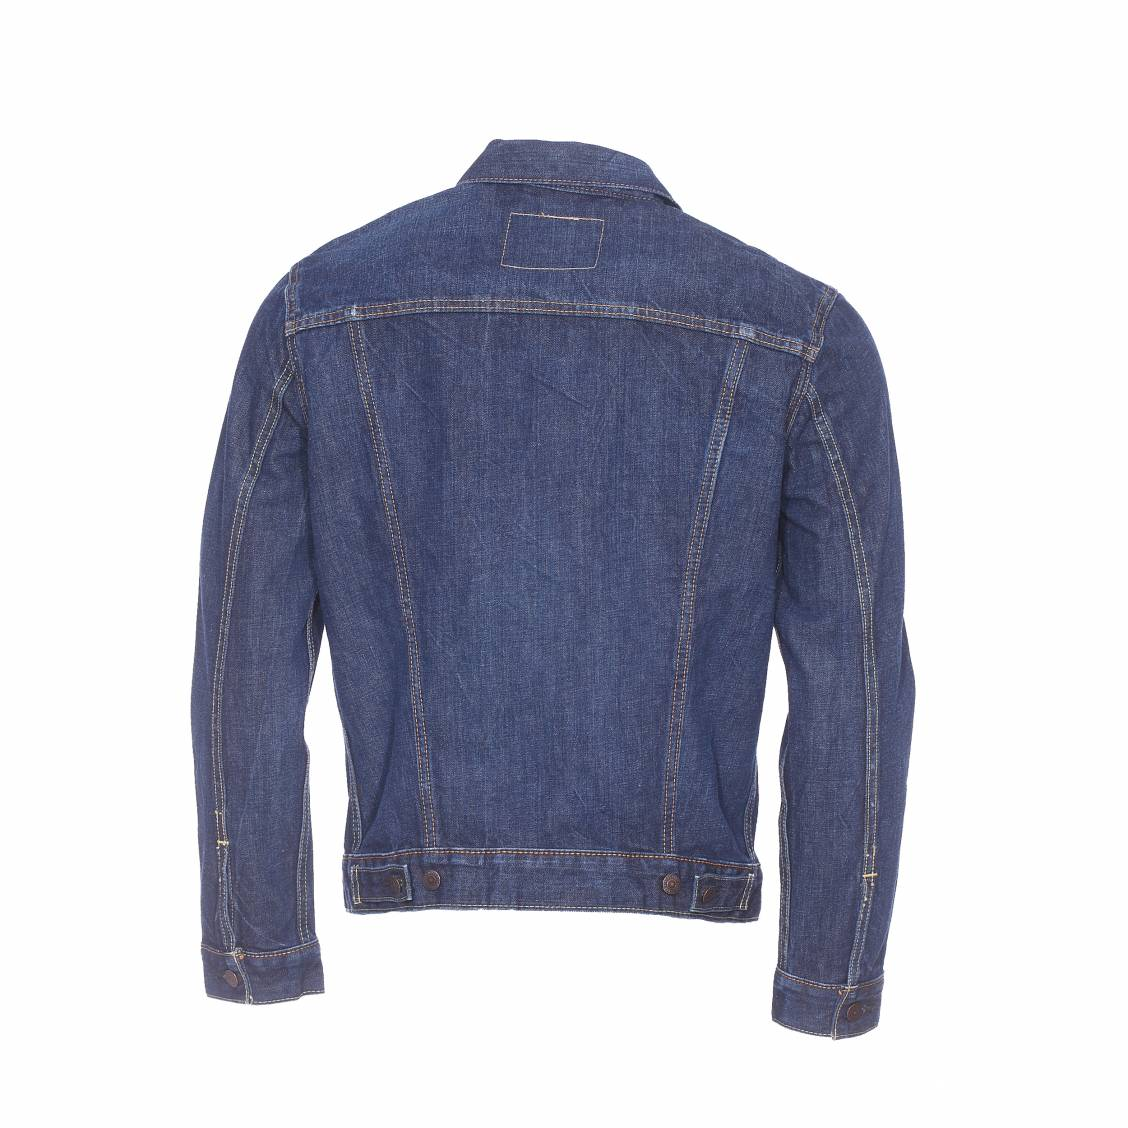 veste en jean trucker levi 39 s conifer bleu brut rue des hommes. Black Bedroom Furniture Sets. Home Design Ideas